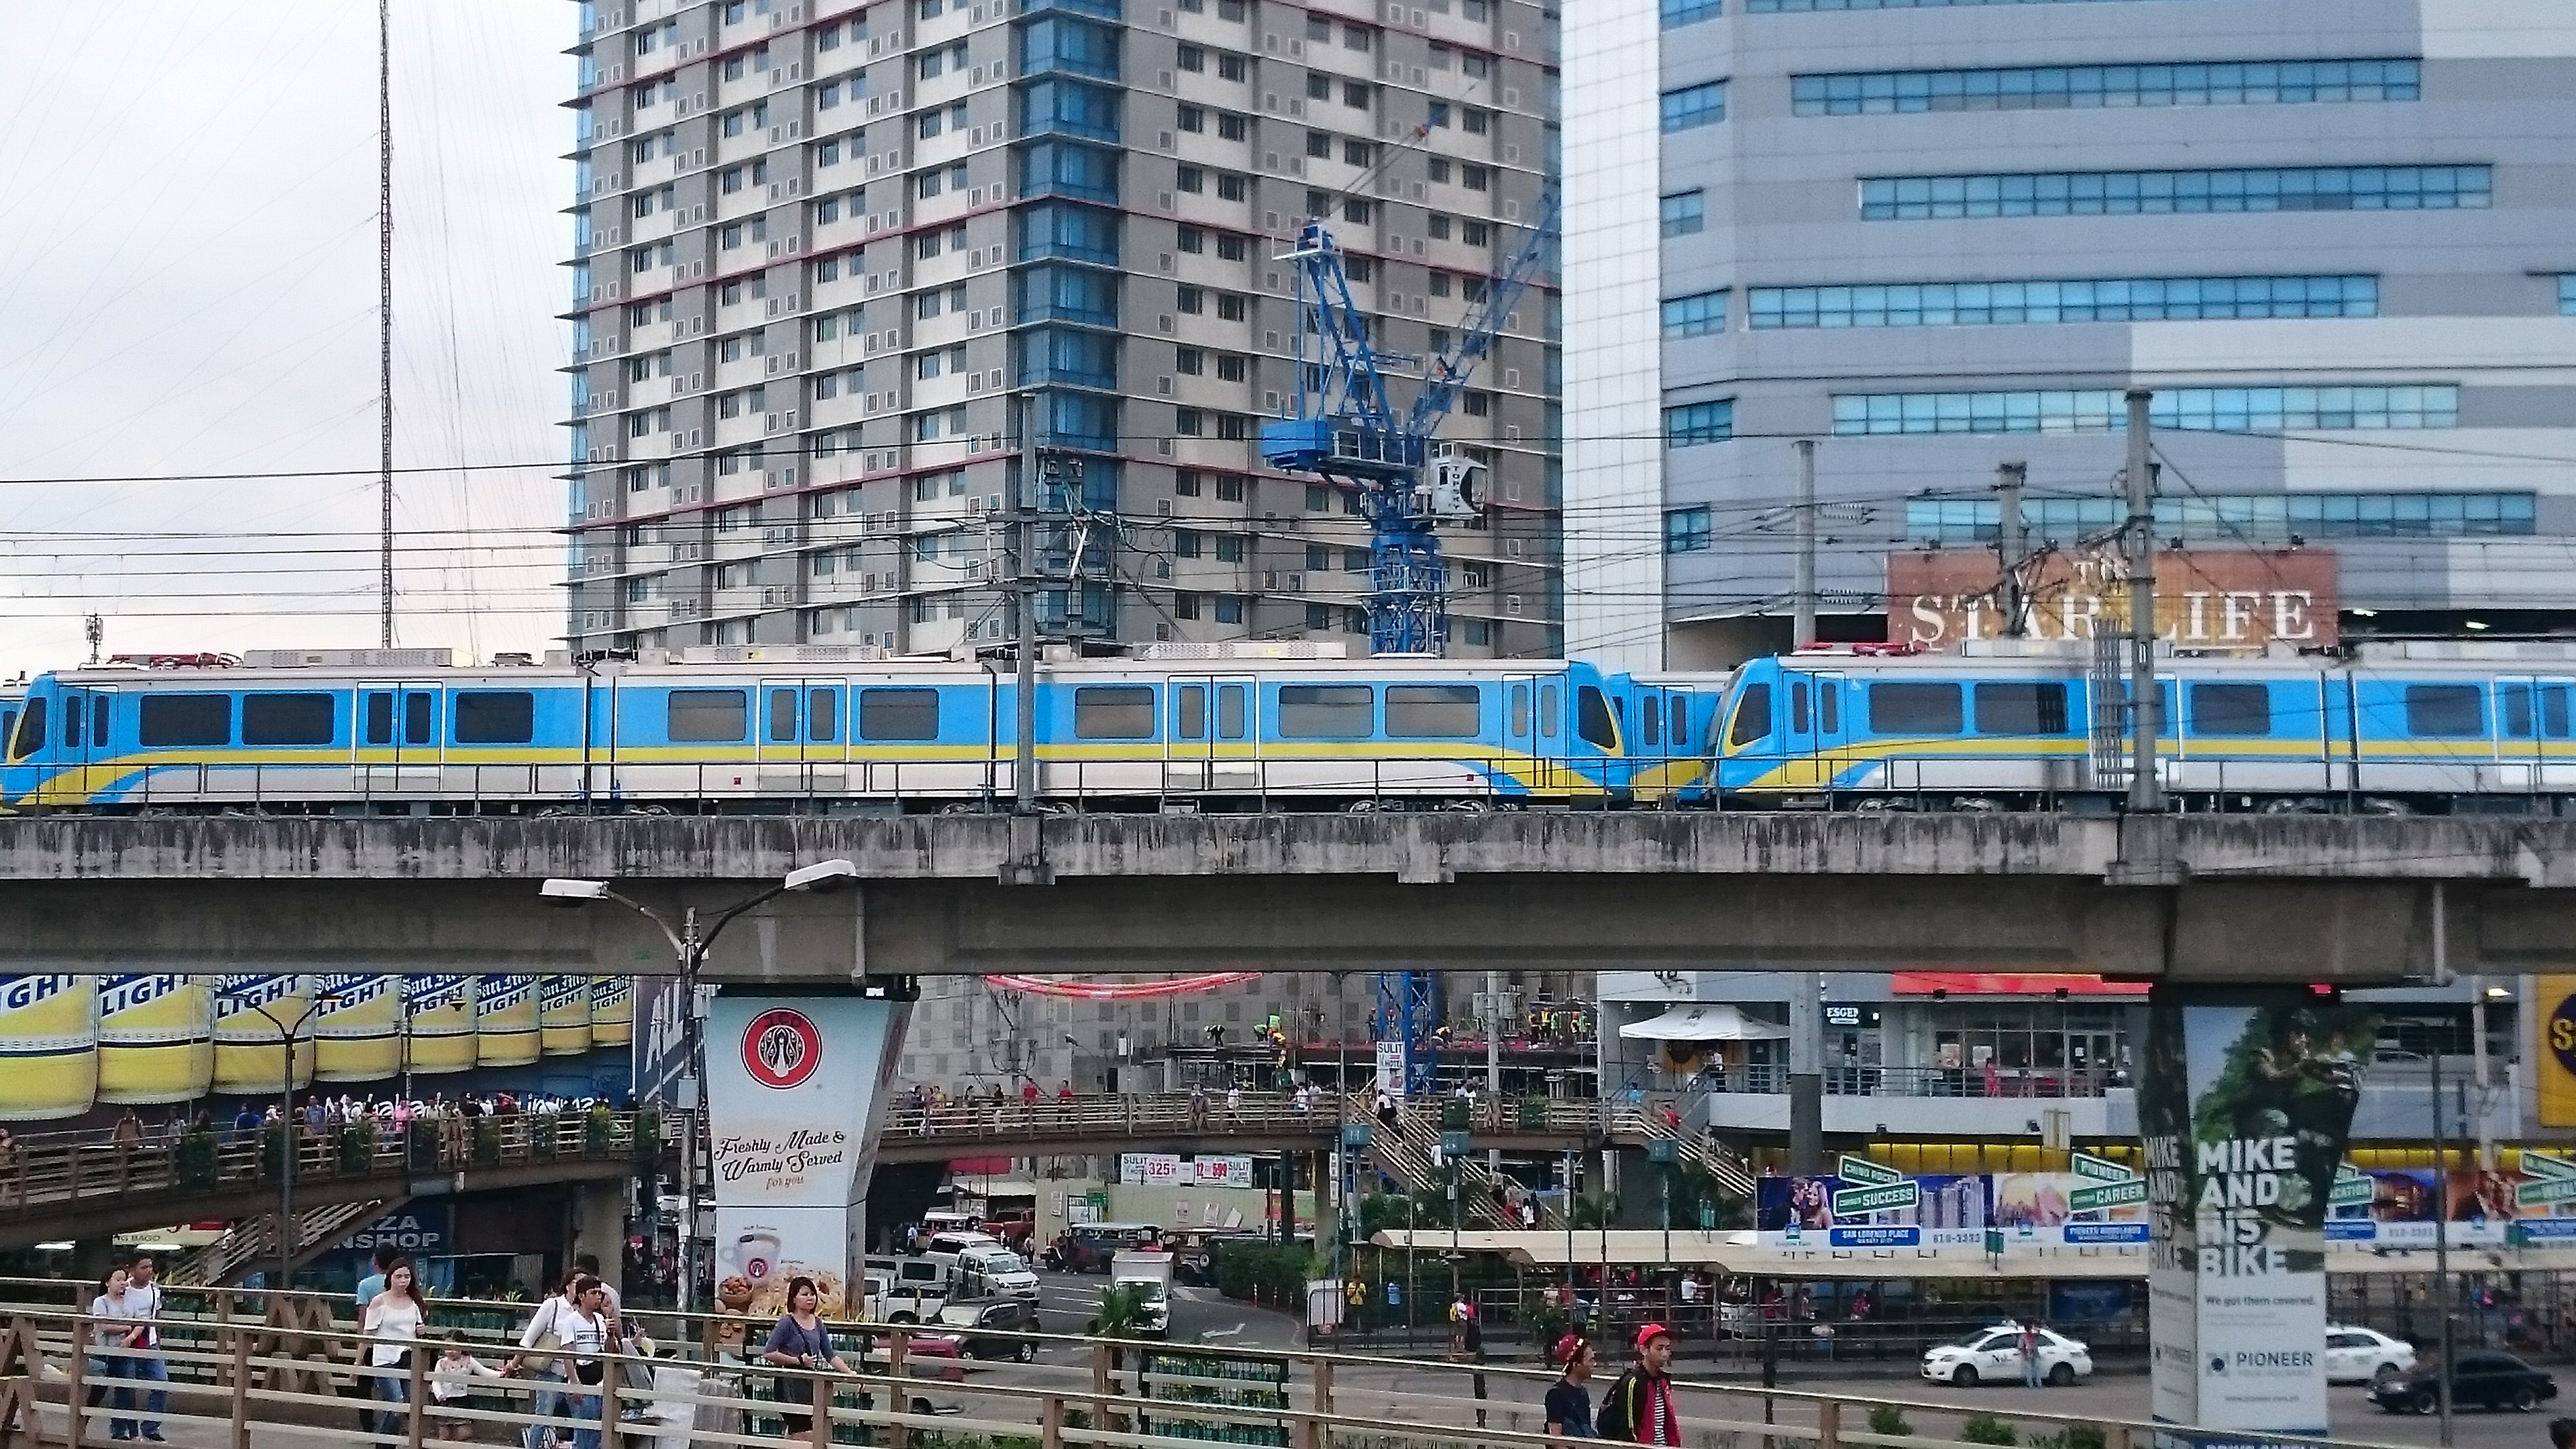 Flow Chart Template For Word: Manila Metro Rail Transit System - Wikipedia,Chart